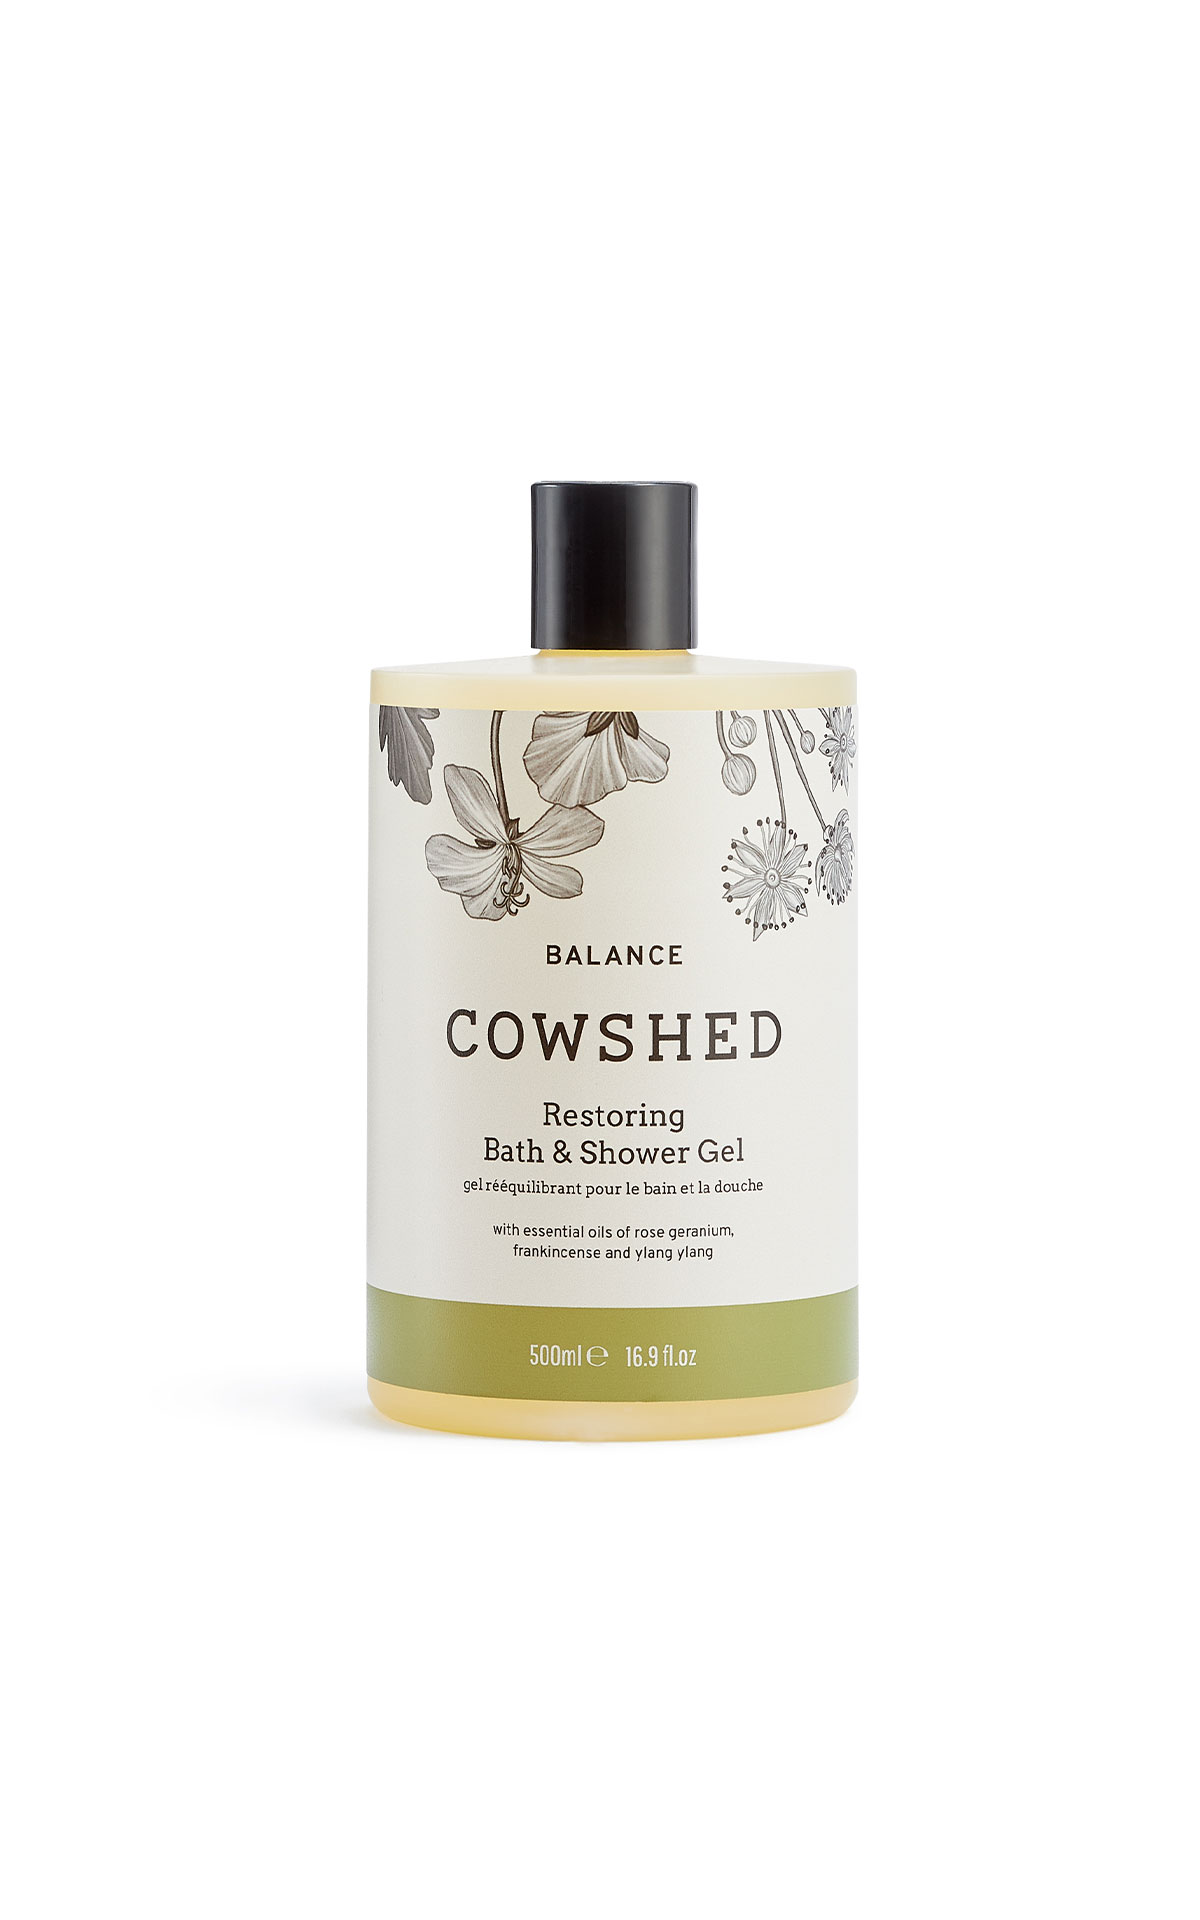 Soho Home Cowshed balance bath & shower gel, 500ml  from Bicester Village